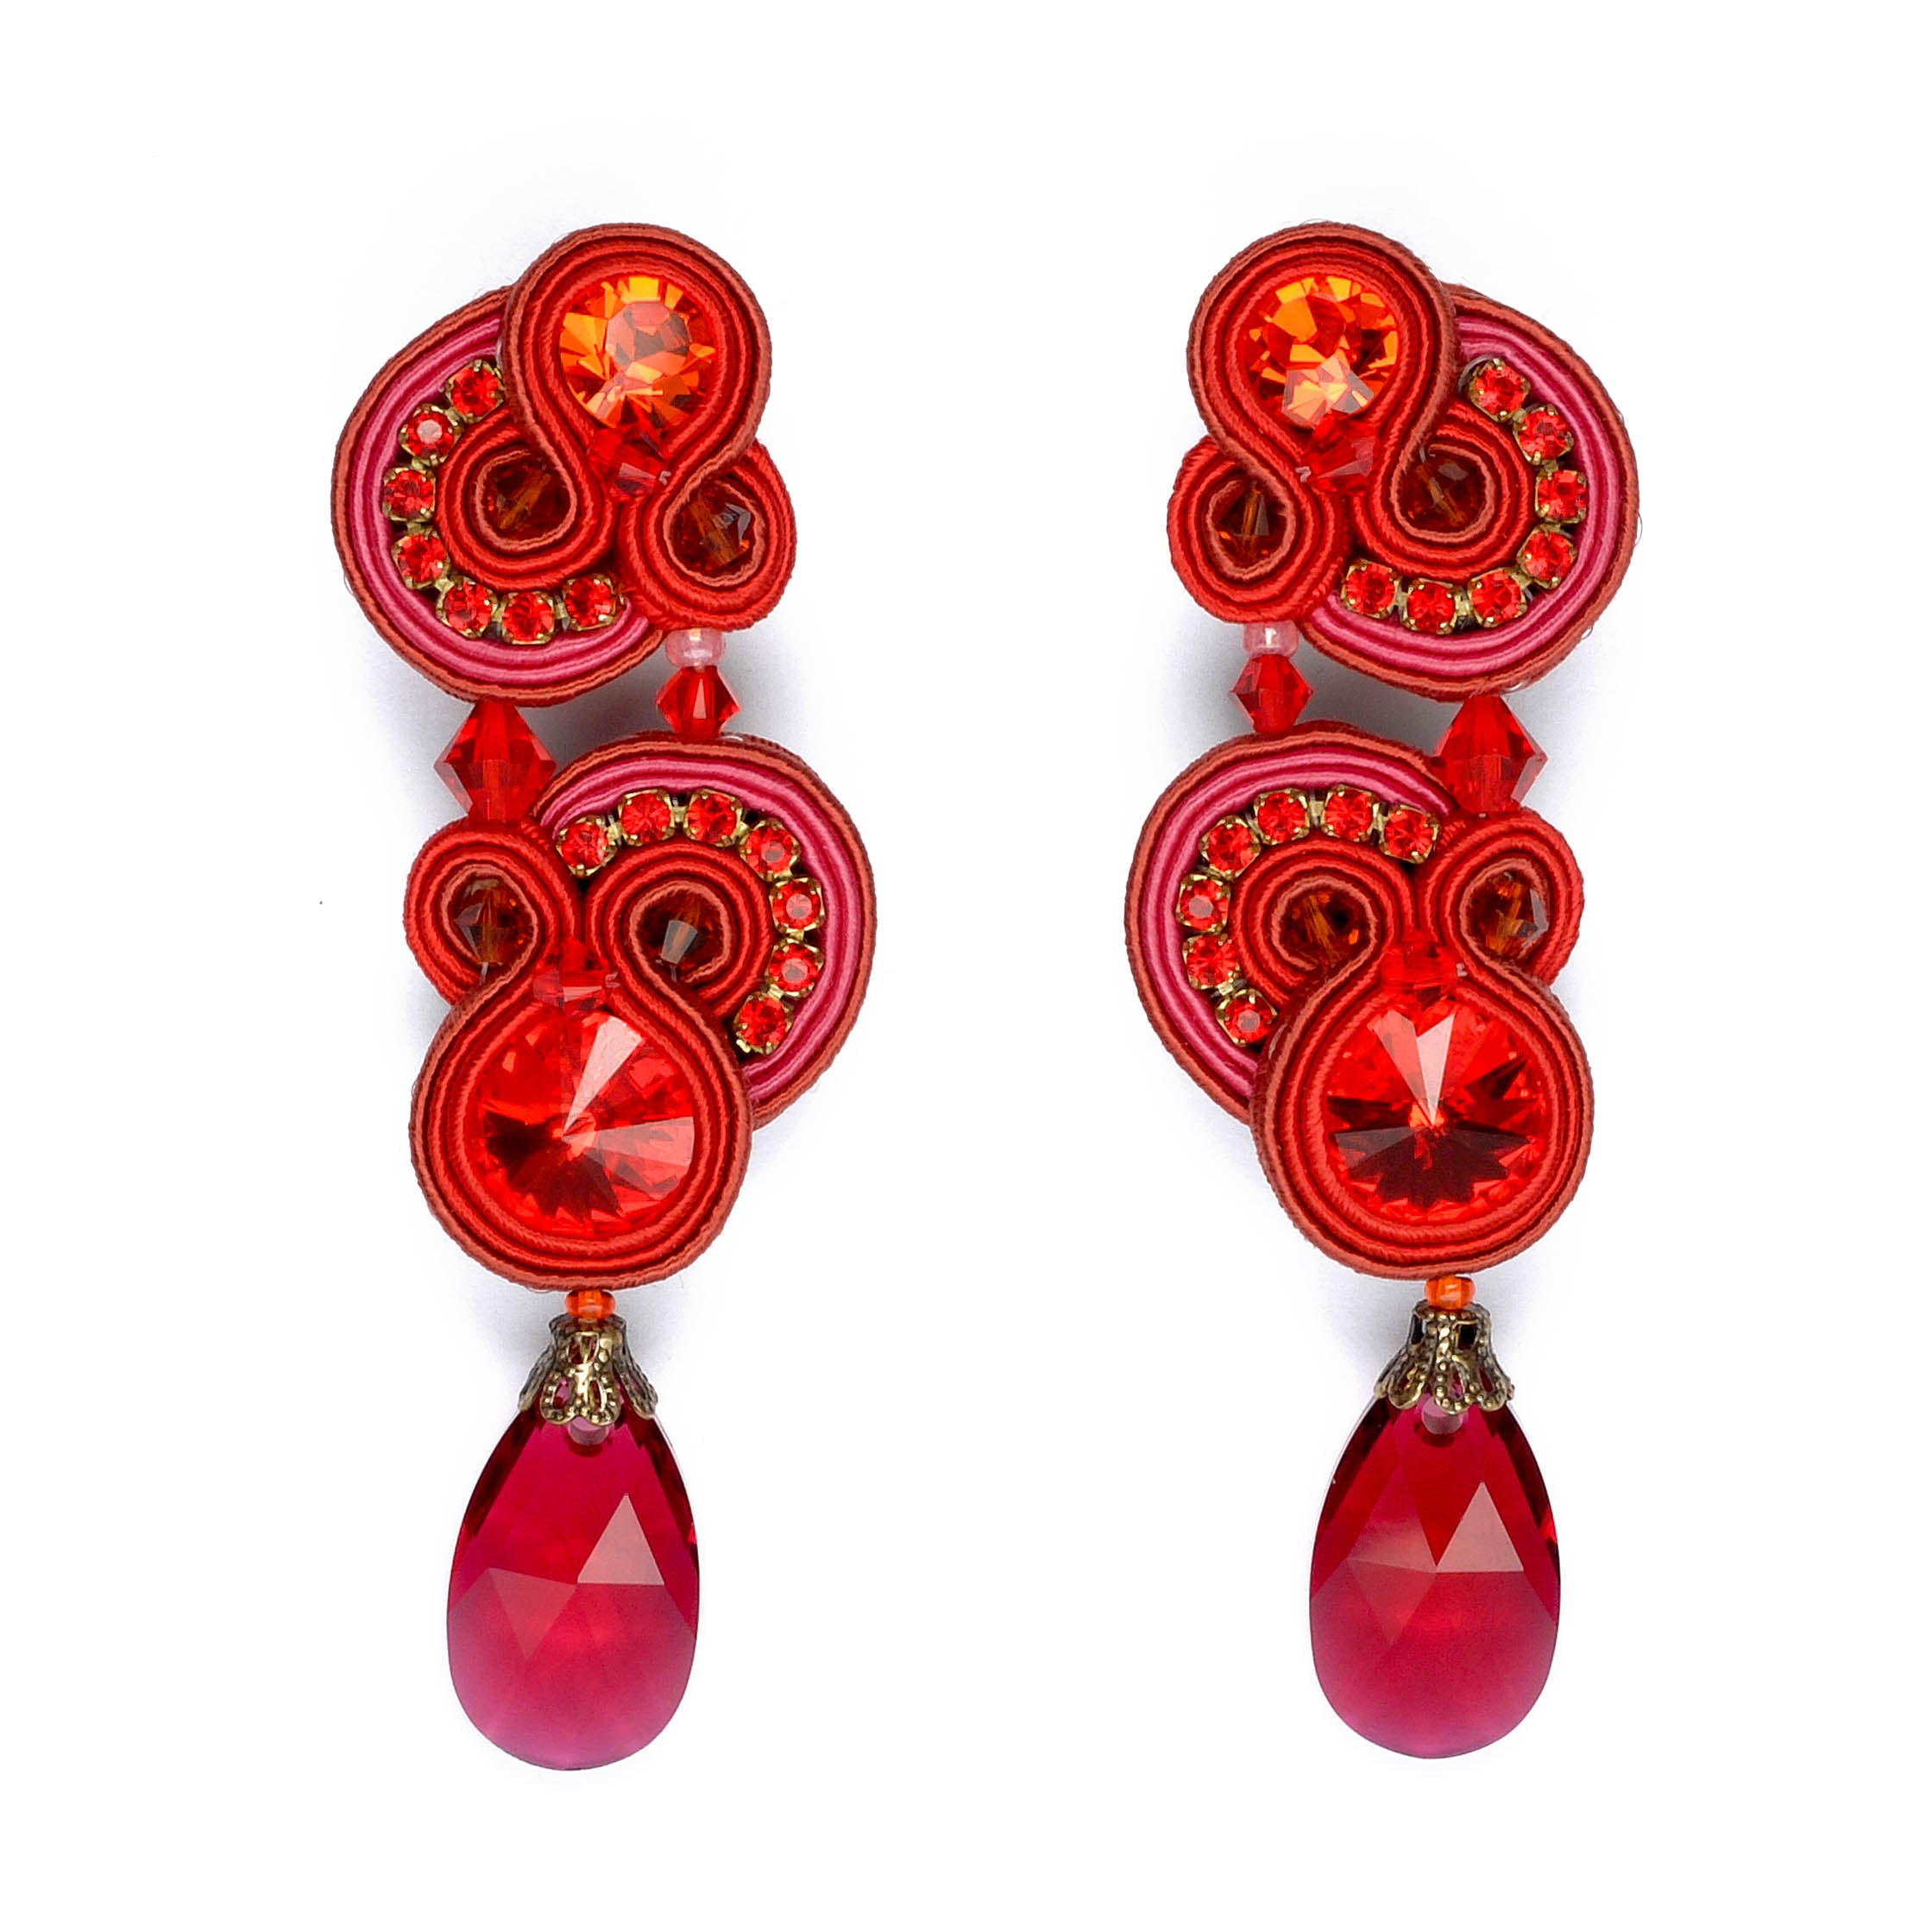 Scandalo Earrings